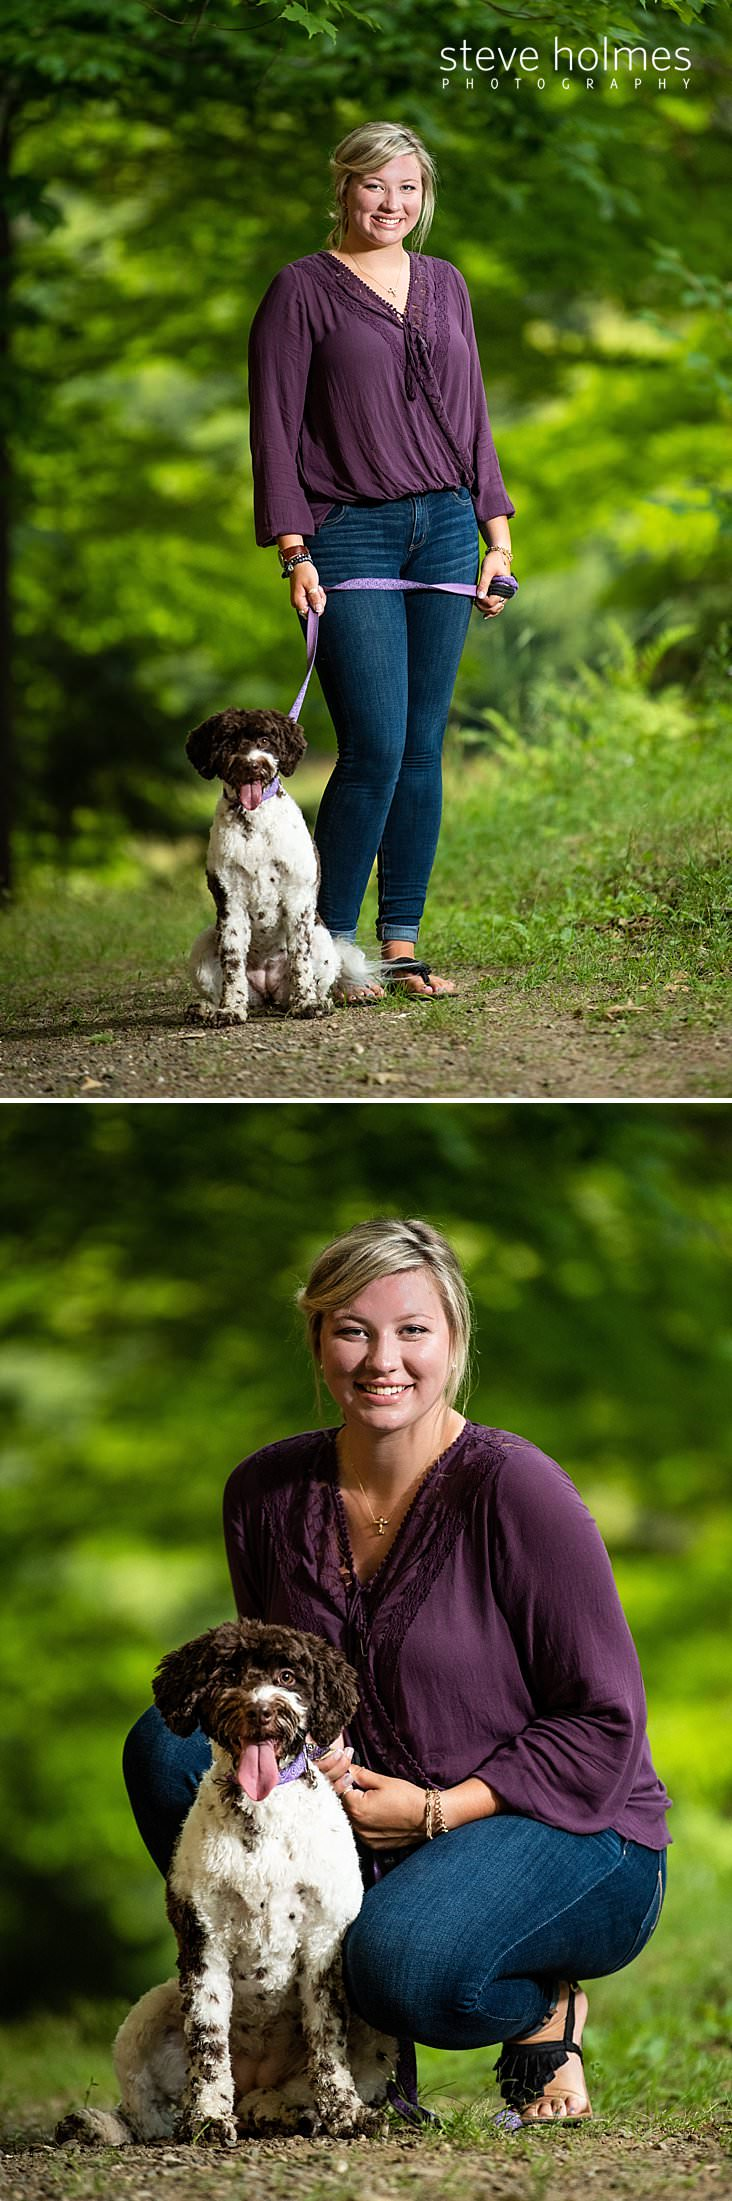 07_Teen in jeans and purple top stands with her dog for outdoor senior portrait.jpg